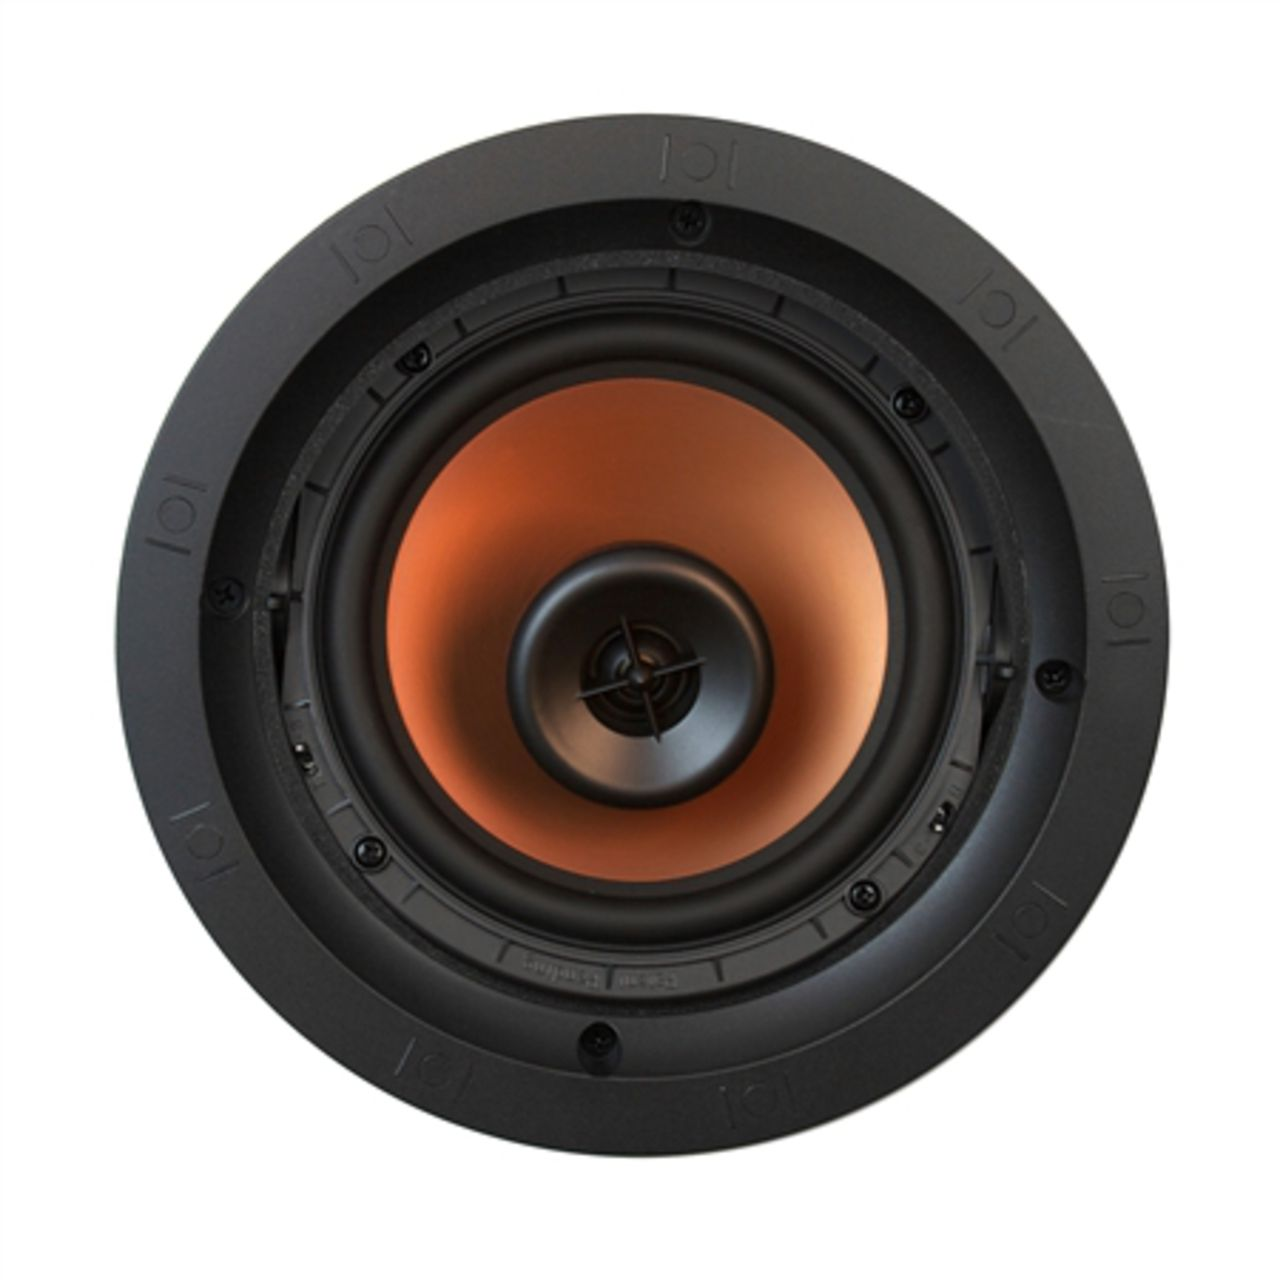 Klipsch: CDT-5650-C II In-Ceiling Speaker